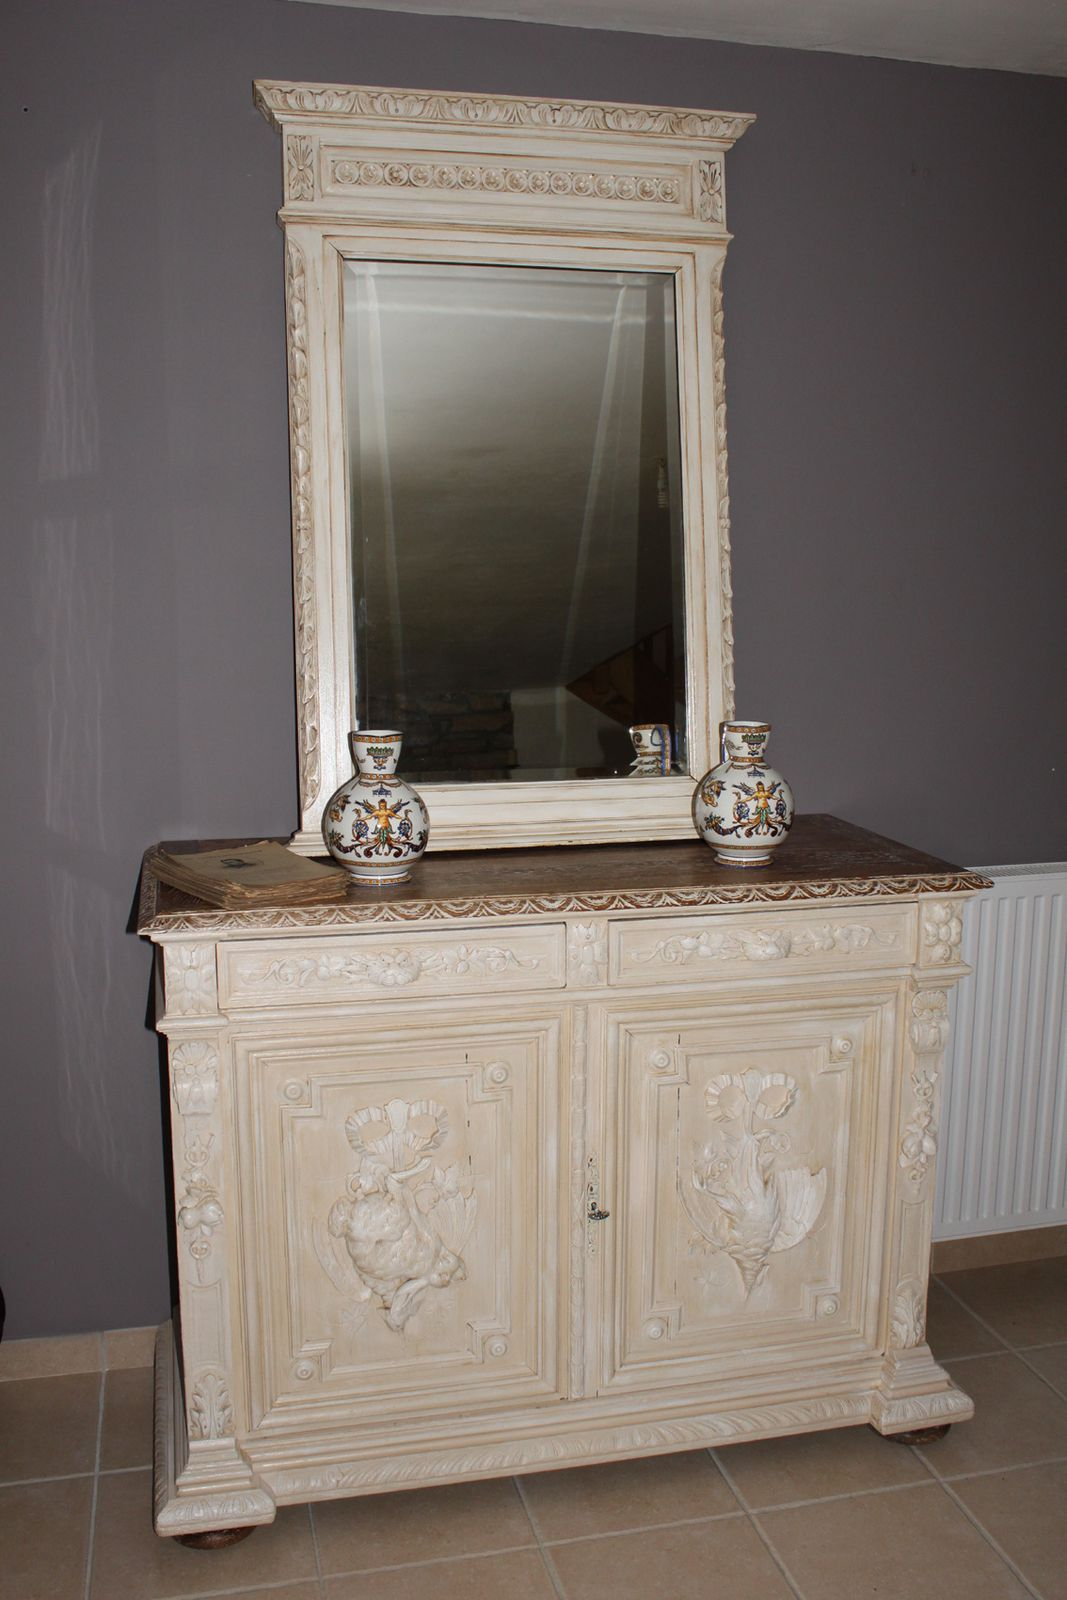 album buffet et miroir henri ii patin beige brocante et patines. Black Bedroom Furniture Sets. Home Design Ideas